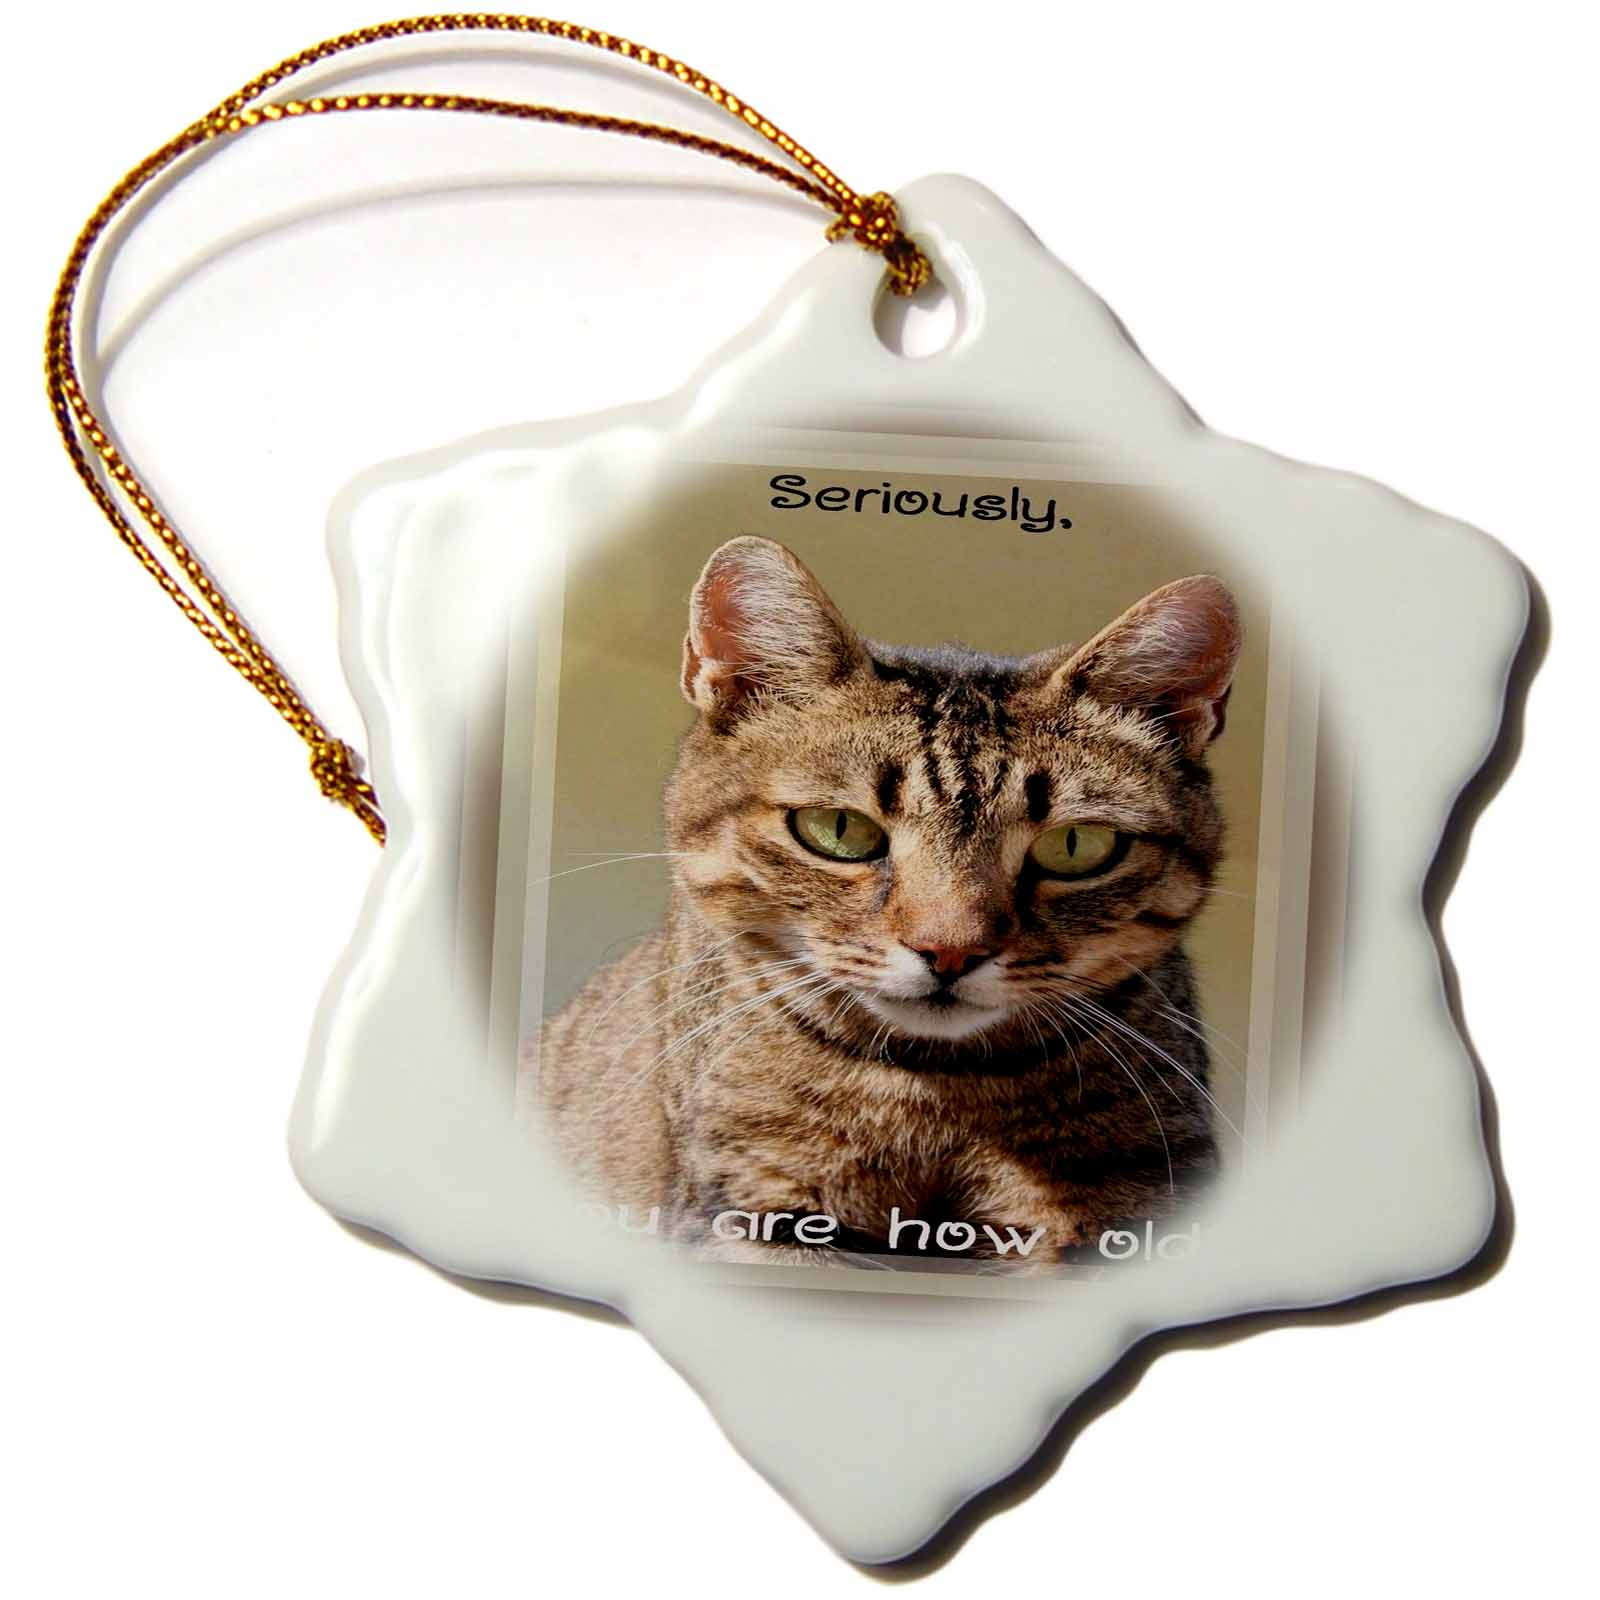 3dRose Seriously, Your How Old  A birthday greeting card with a tabby cat and funny caption, Snowflake Ornament, Porcelain, 3-inch